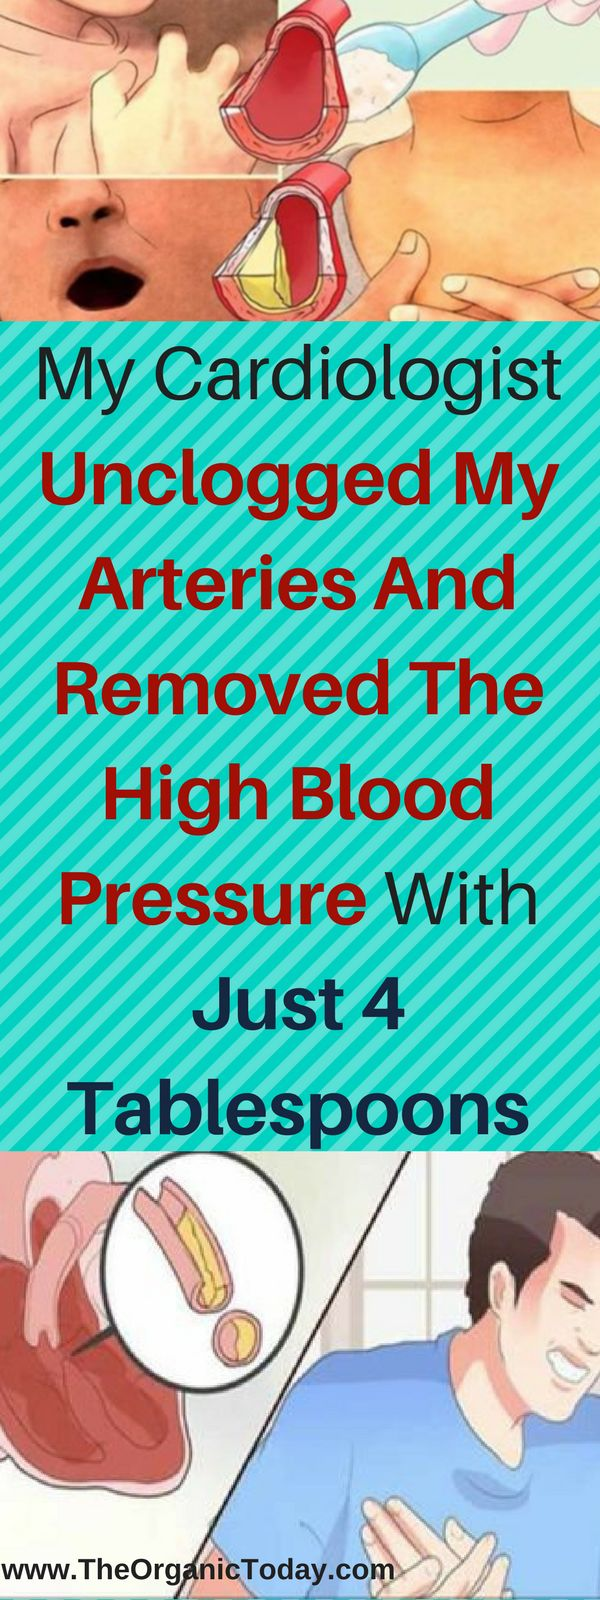 My Cardiologist Unclogged My Arteries And Removed The High Blood Pressure With Just 4 Tablespoons